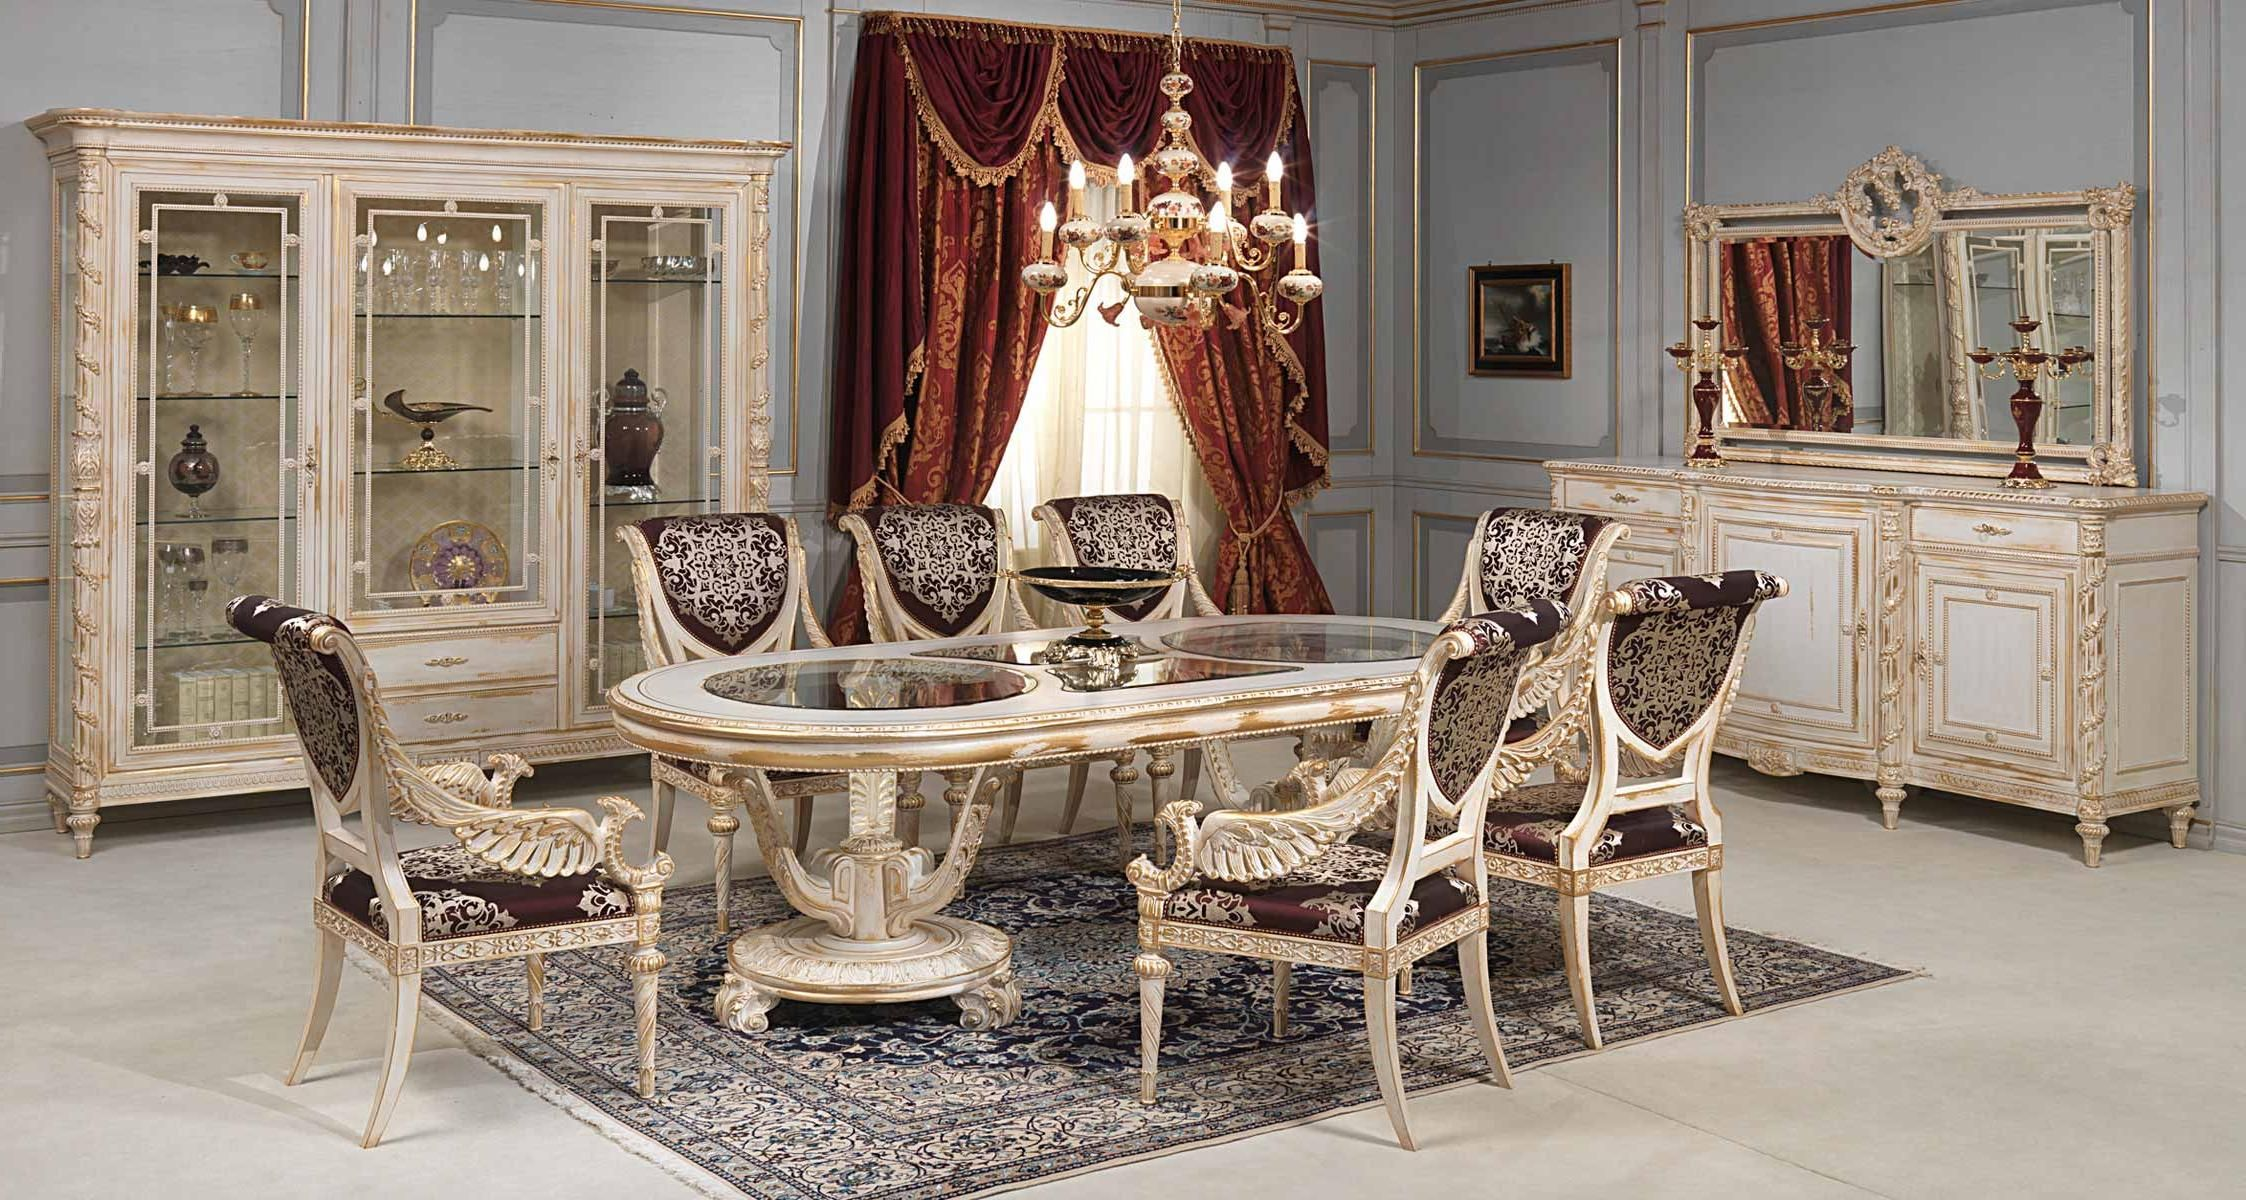 Luxury Dining Room Table Design With White Gold Chair Including Floral Rug Under The Also Elegant Dresser And Furniture Shelves In Nearby Red